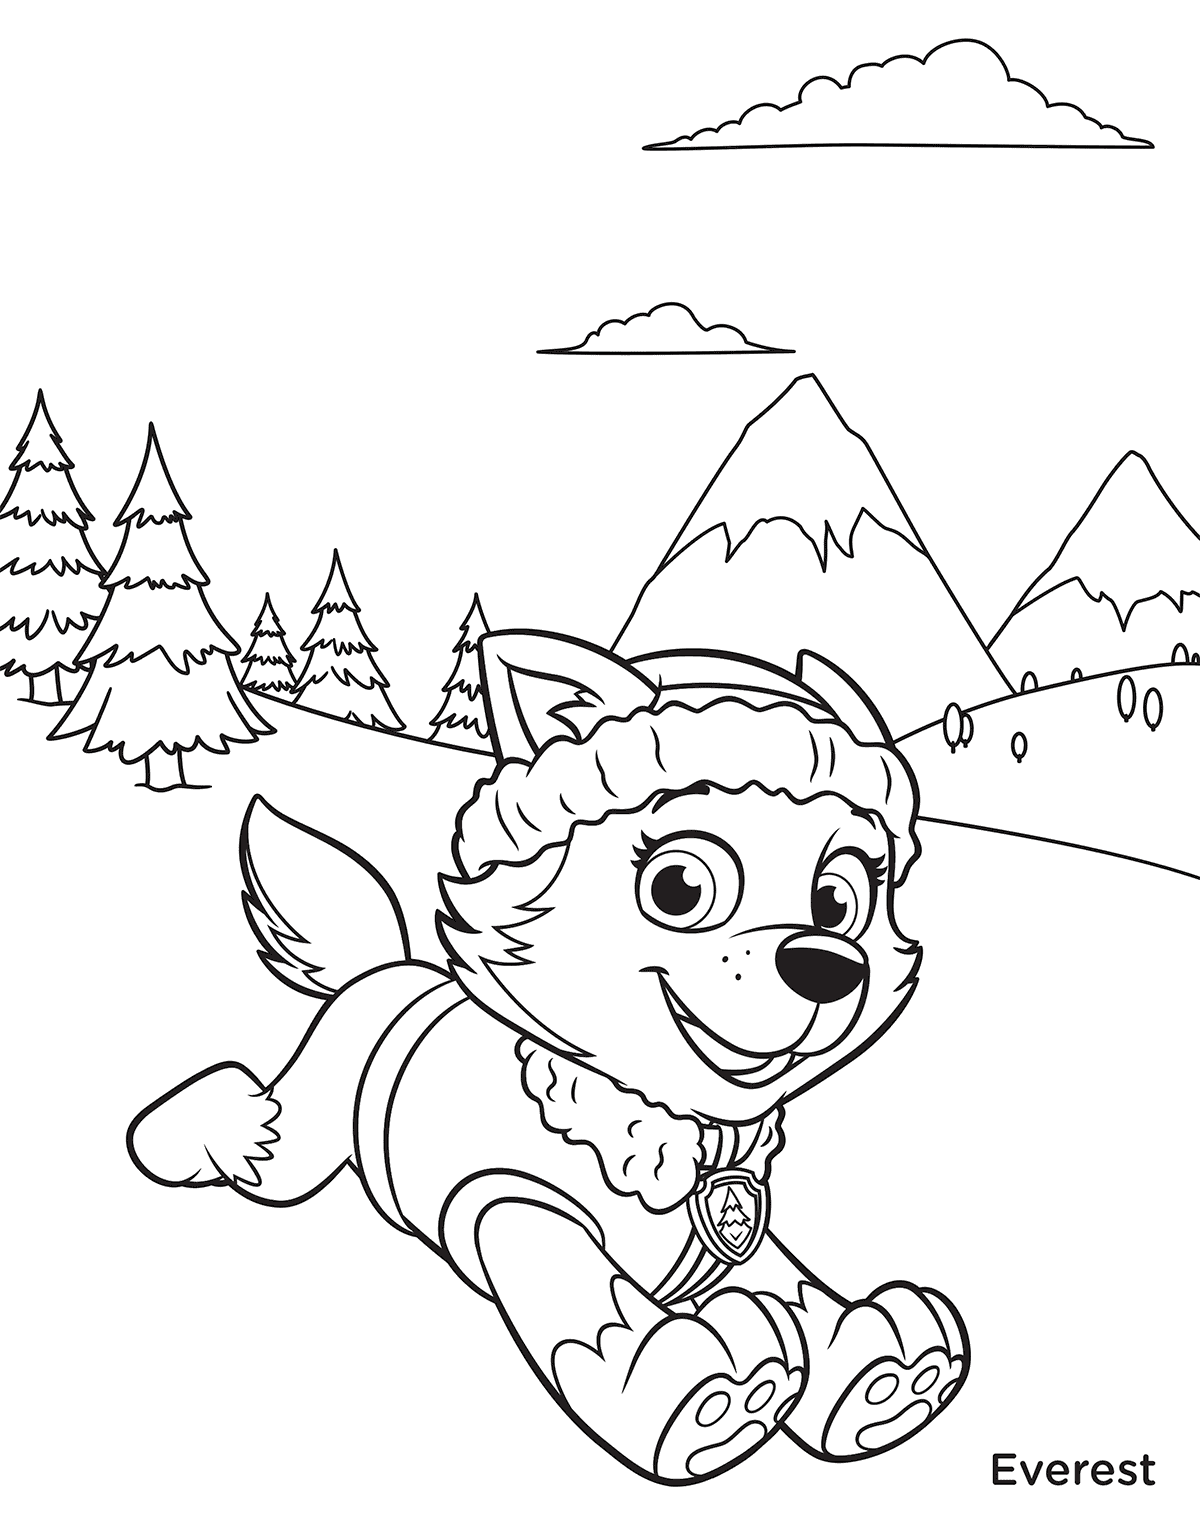 1200x1530 Paw Patrol Everest In Mountains Coloring Page